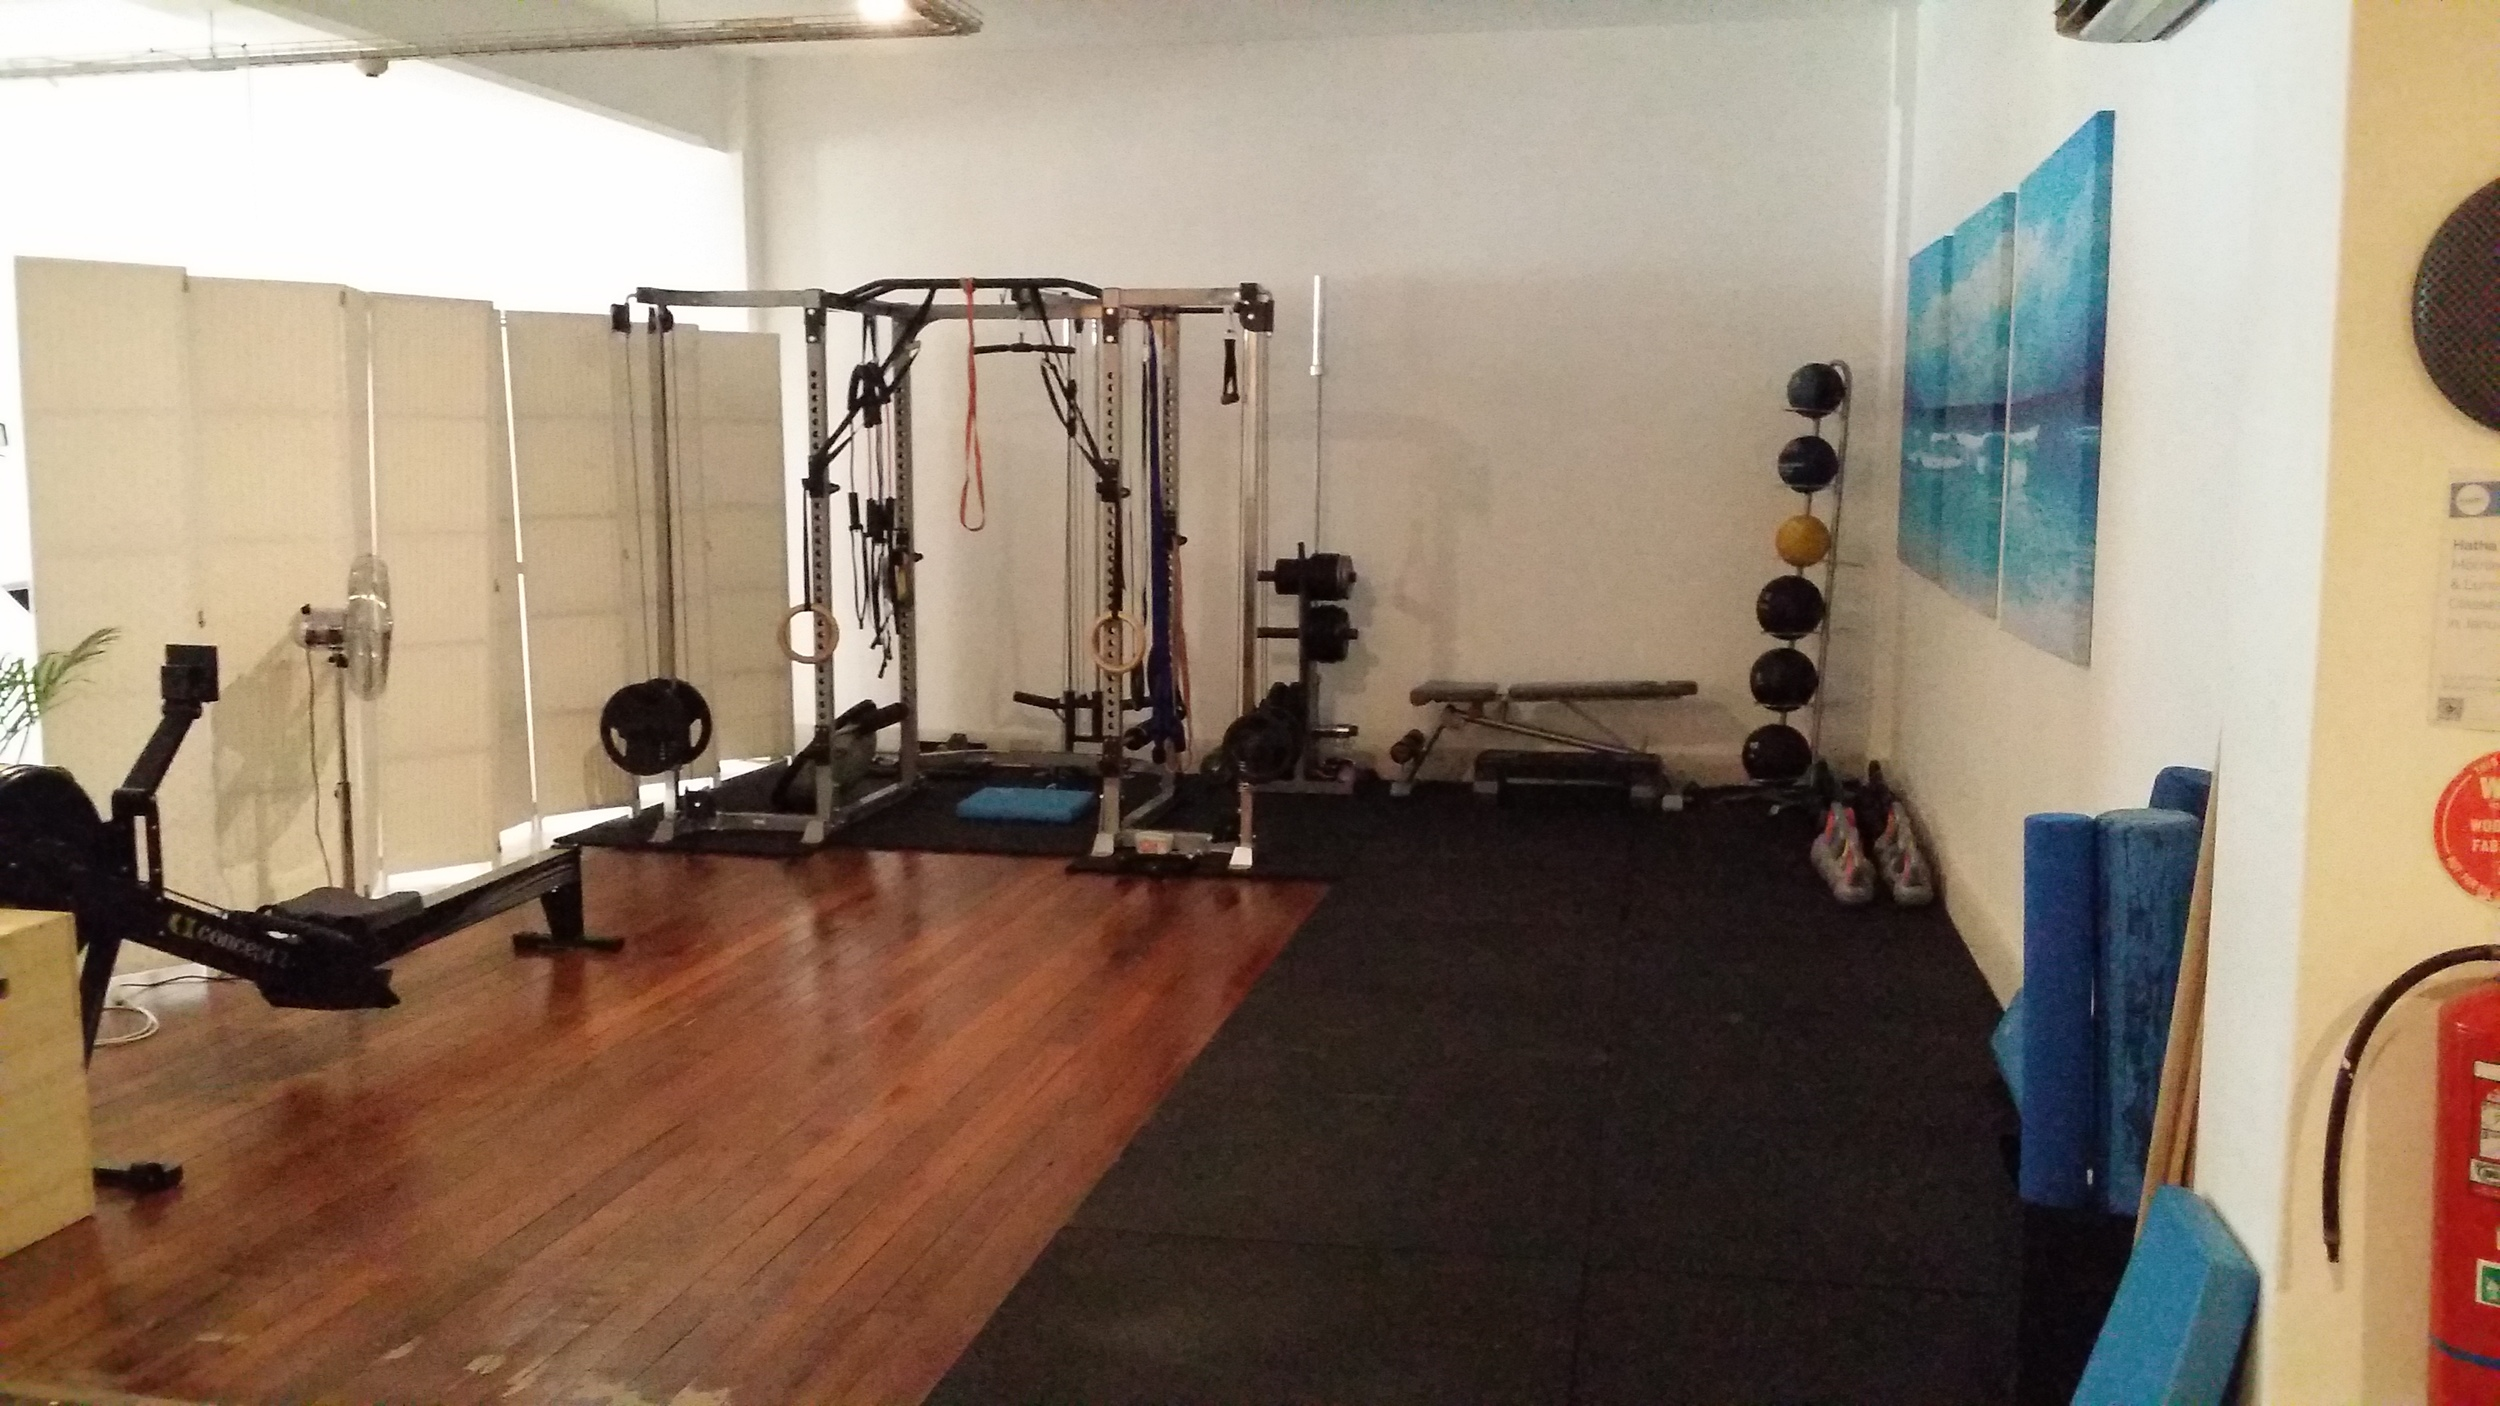 Moov Personal Training Adelaide: Our new gym space